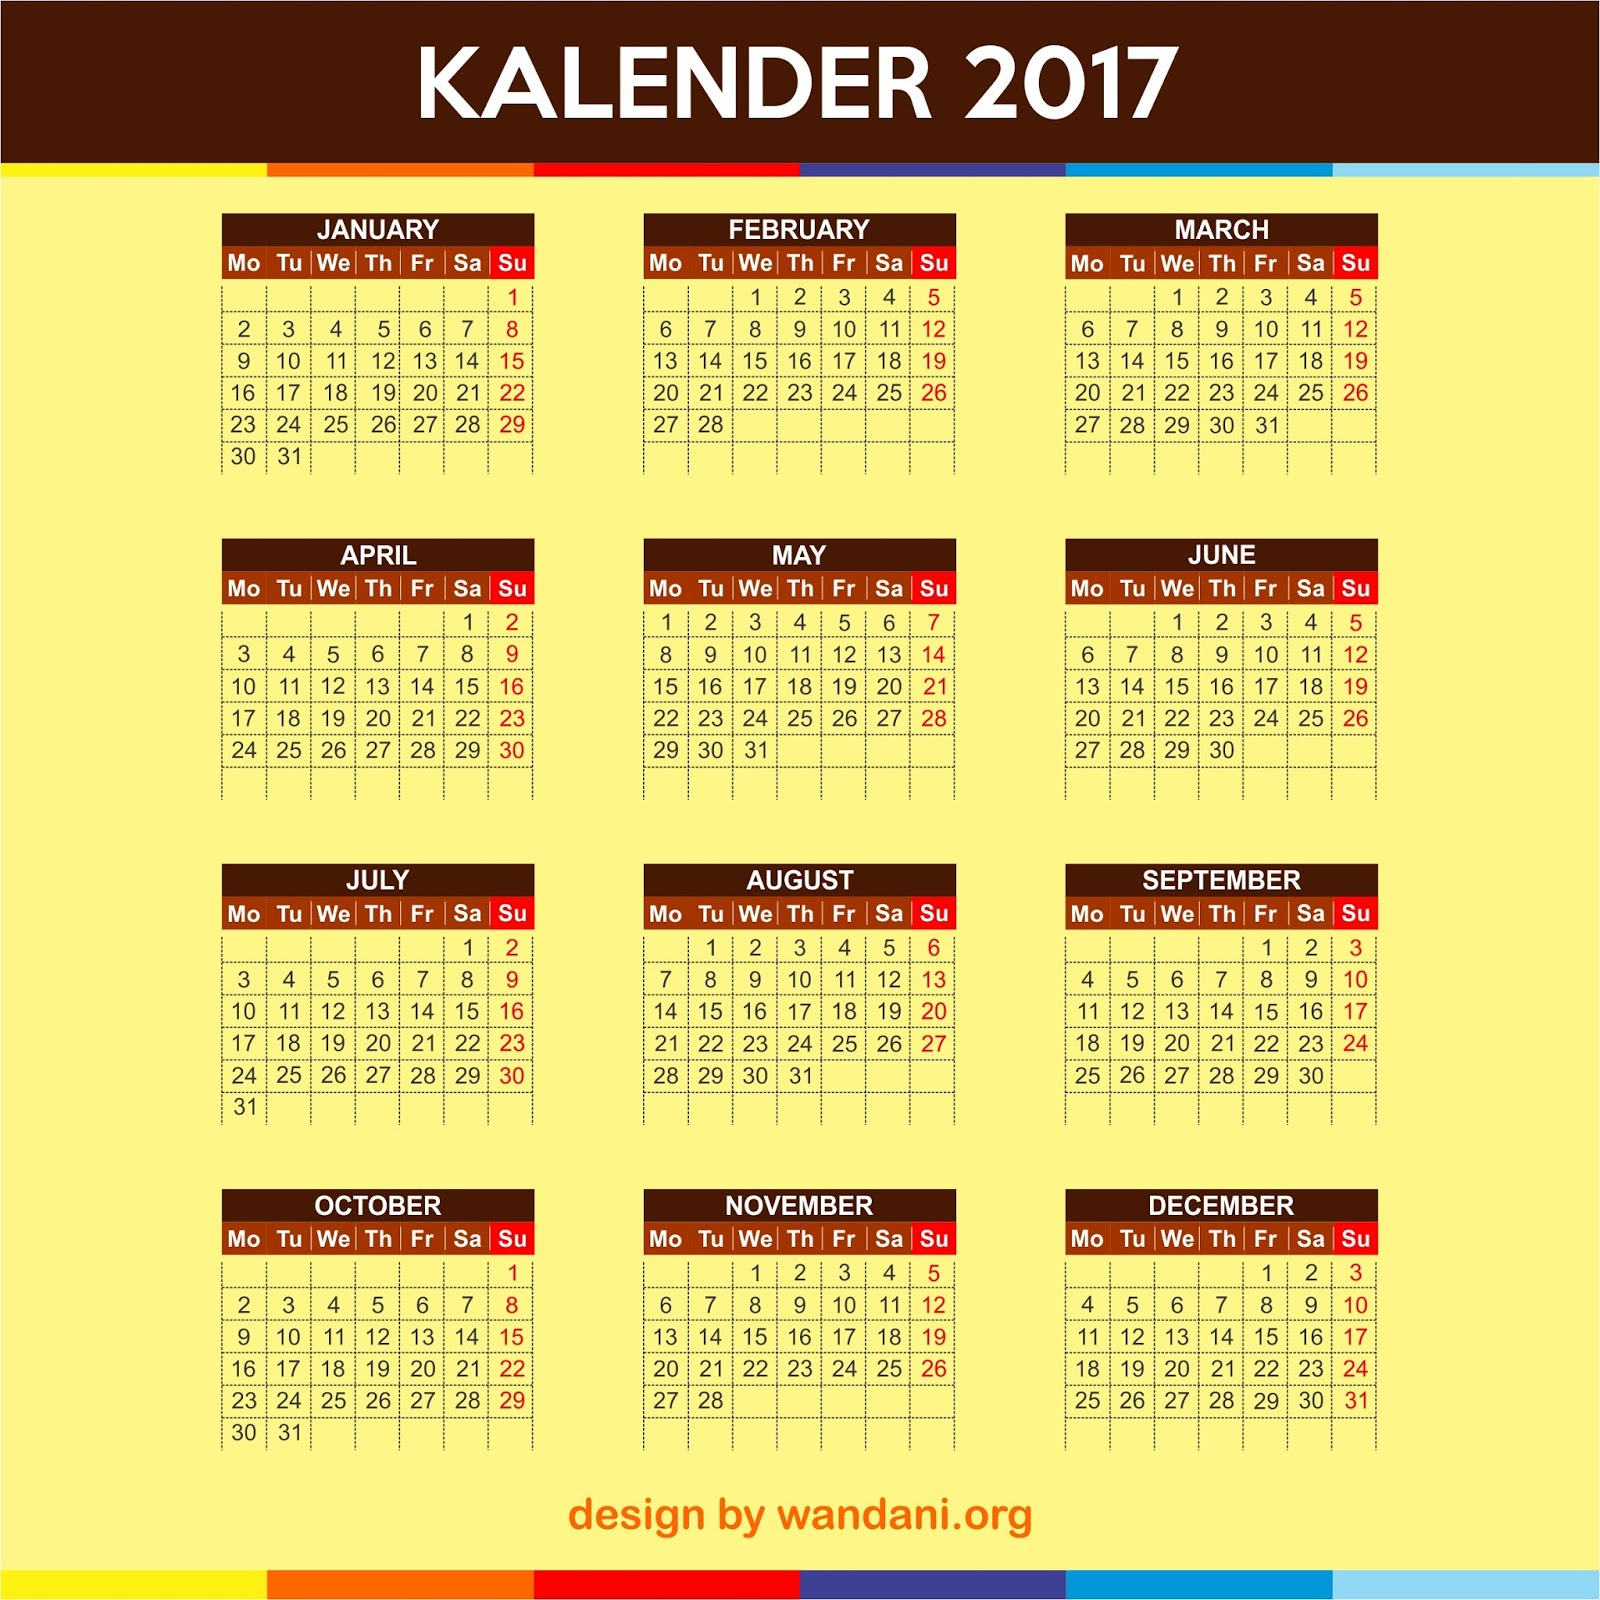 Free download calender design 2017 format cdr phreaker word for Kalender design